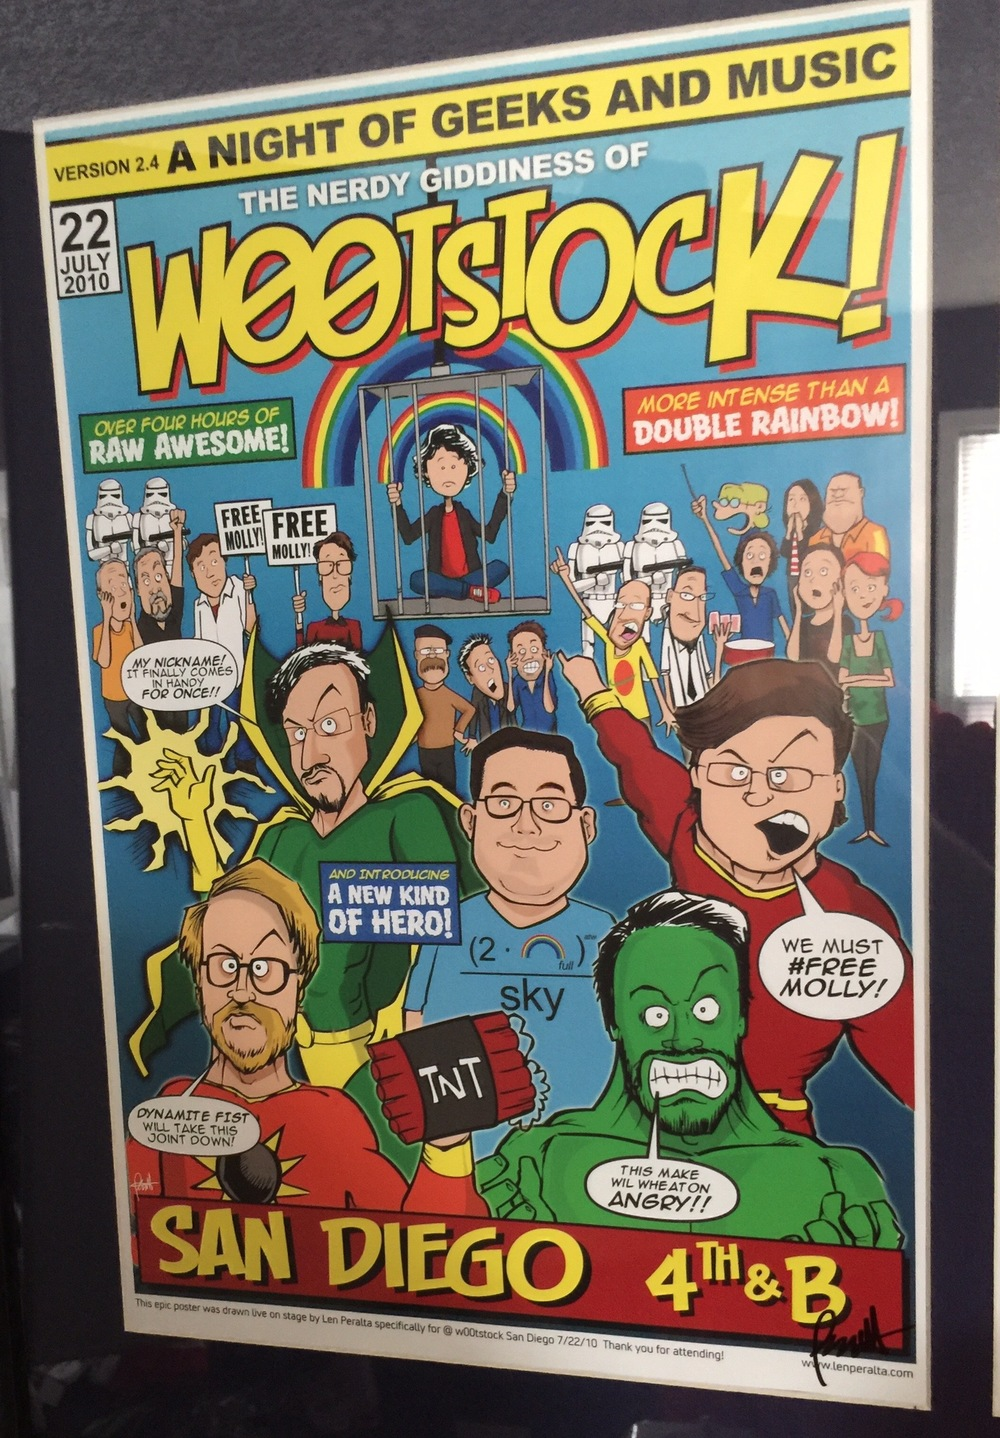 Artist Len Peralta drew this poster for the show and Dan purchased a version with himself added in the center